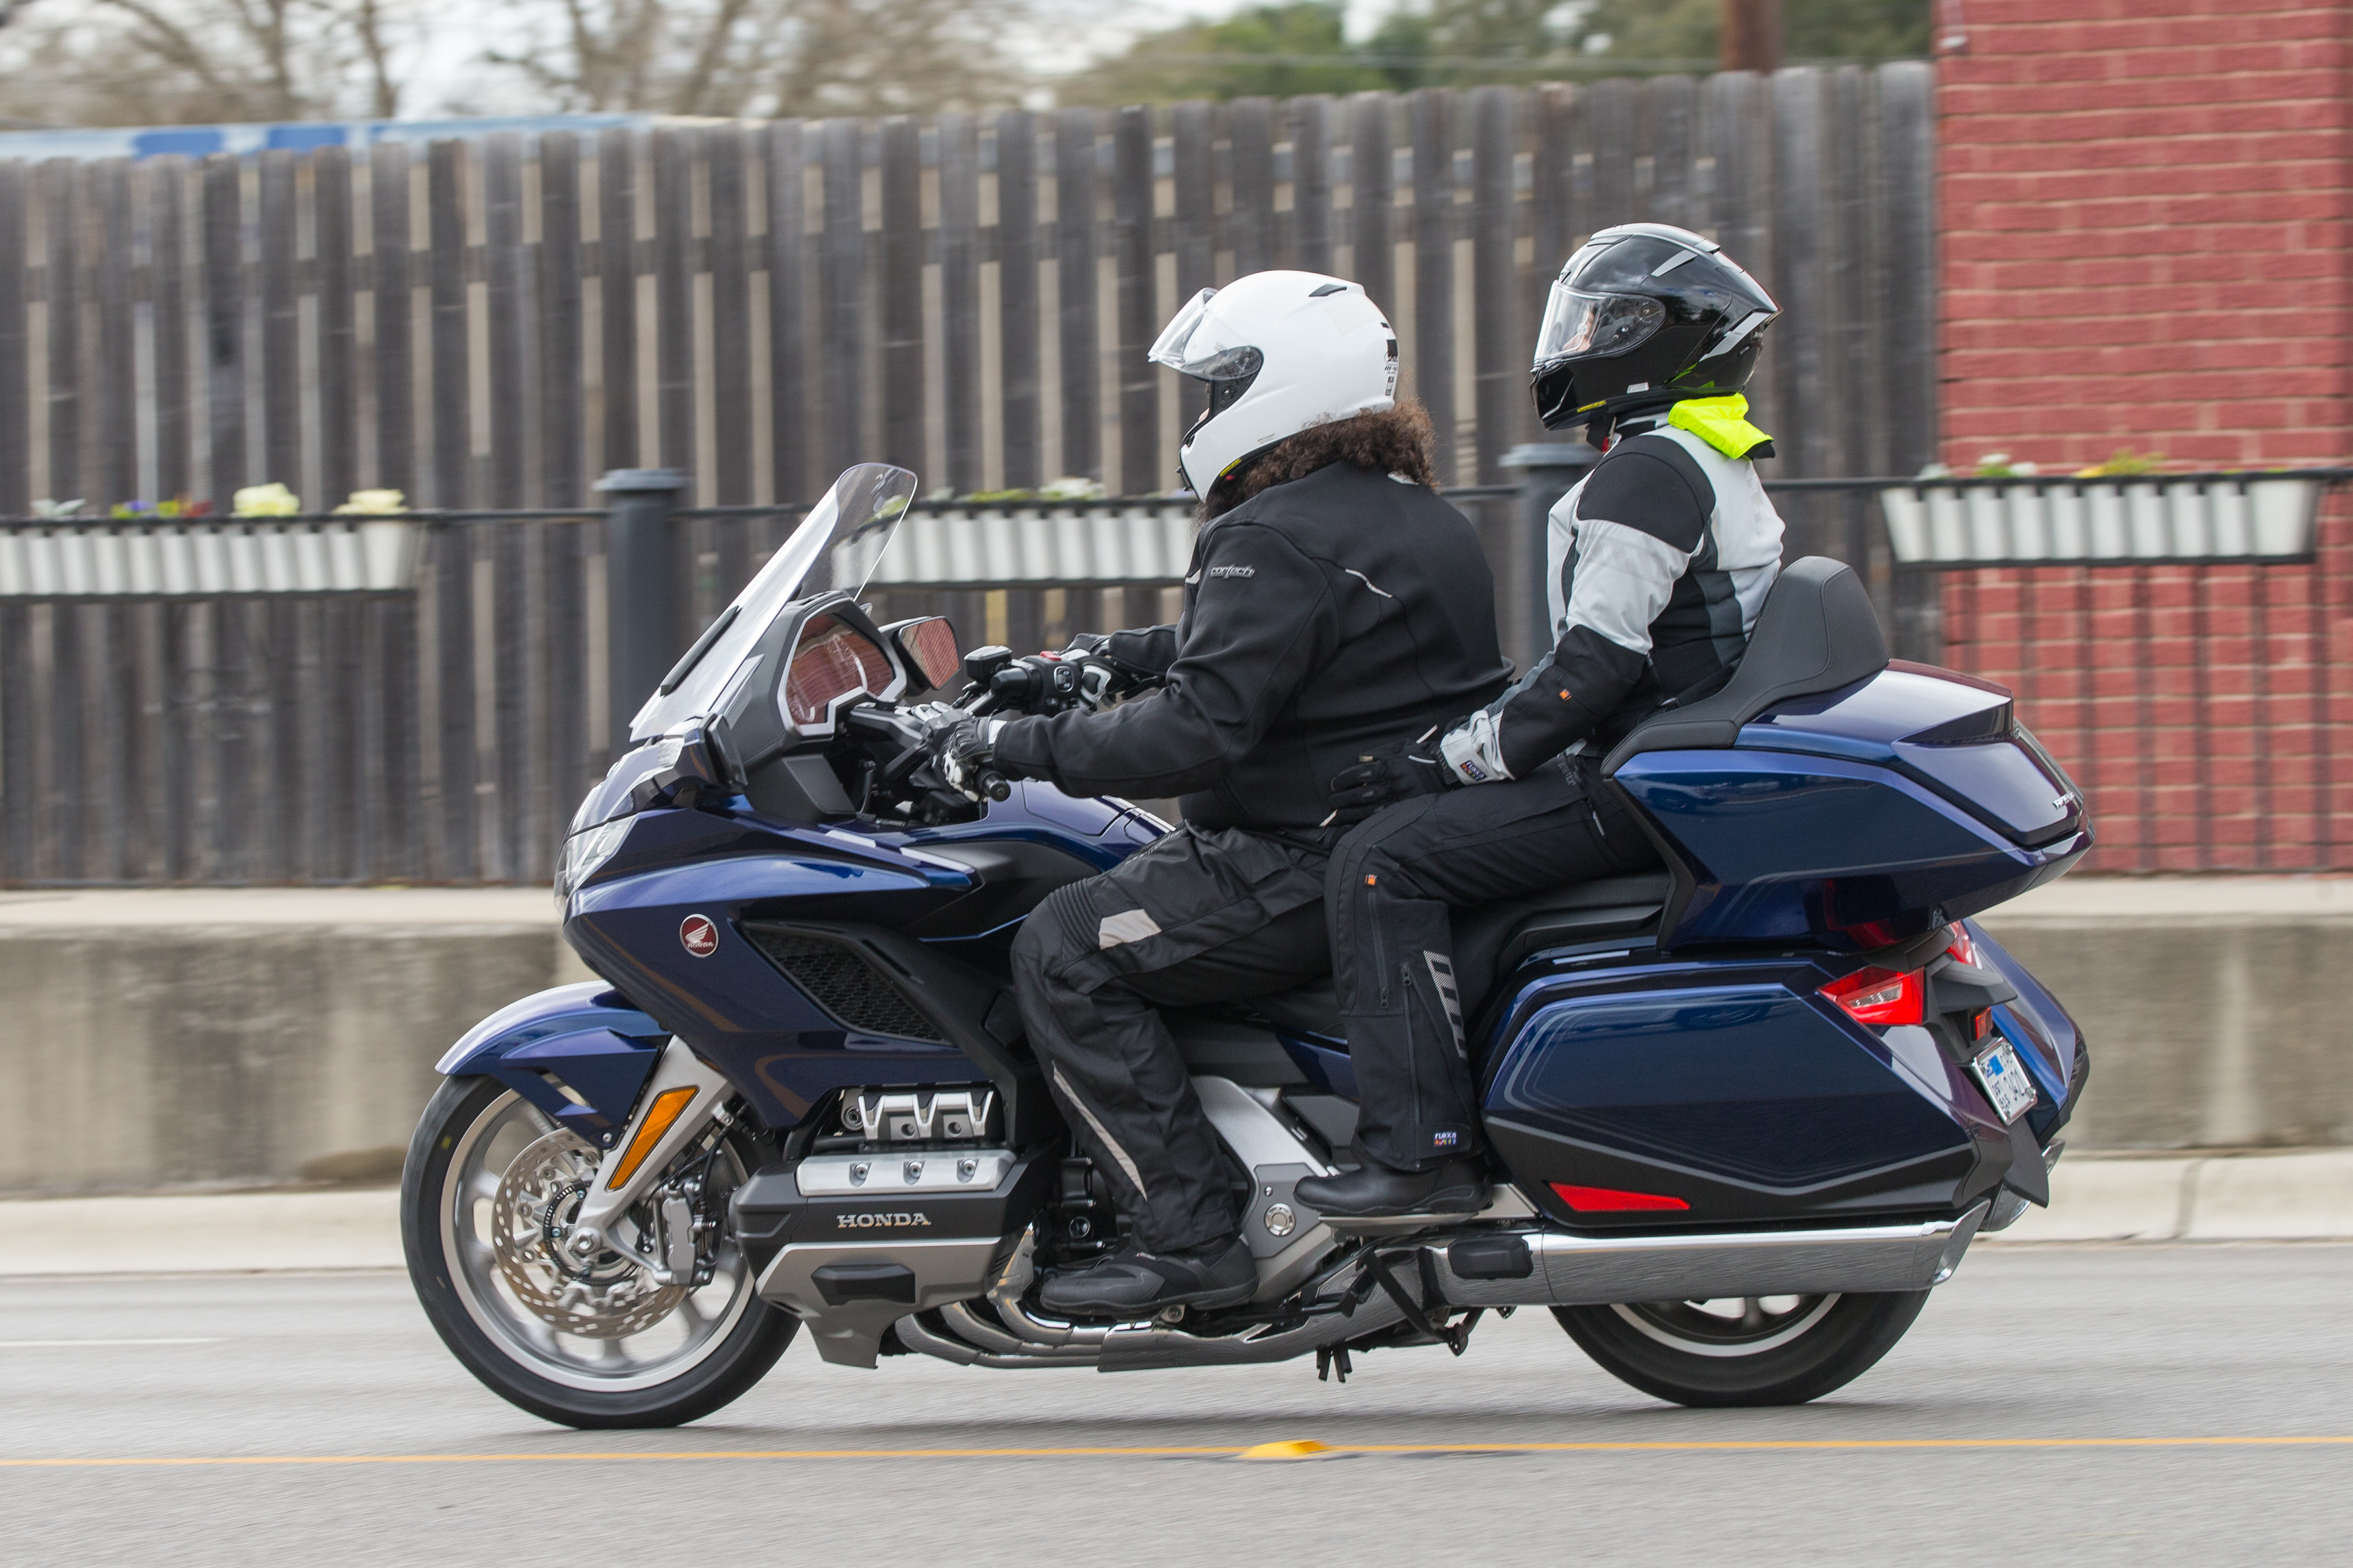 2018 Honda Gold Wing Tour first ride review - RevZilla